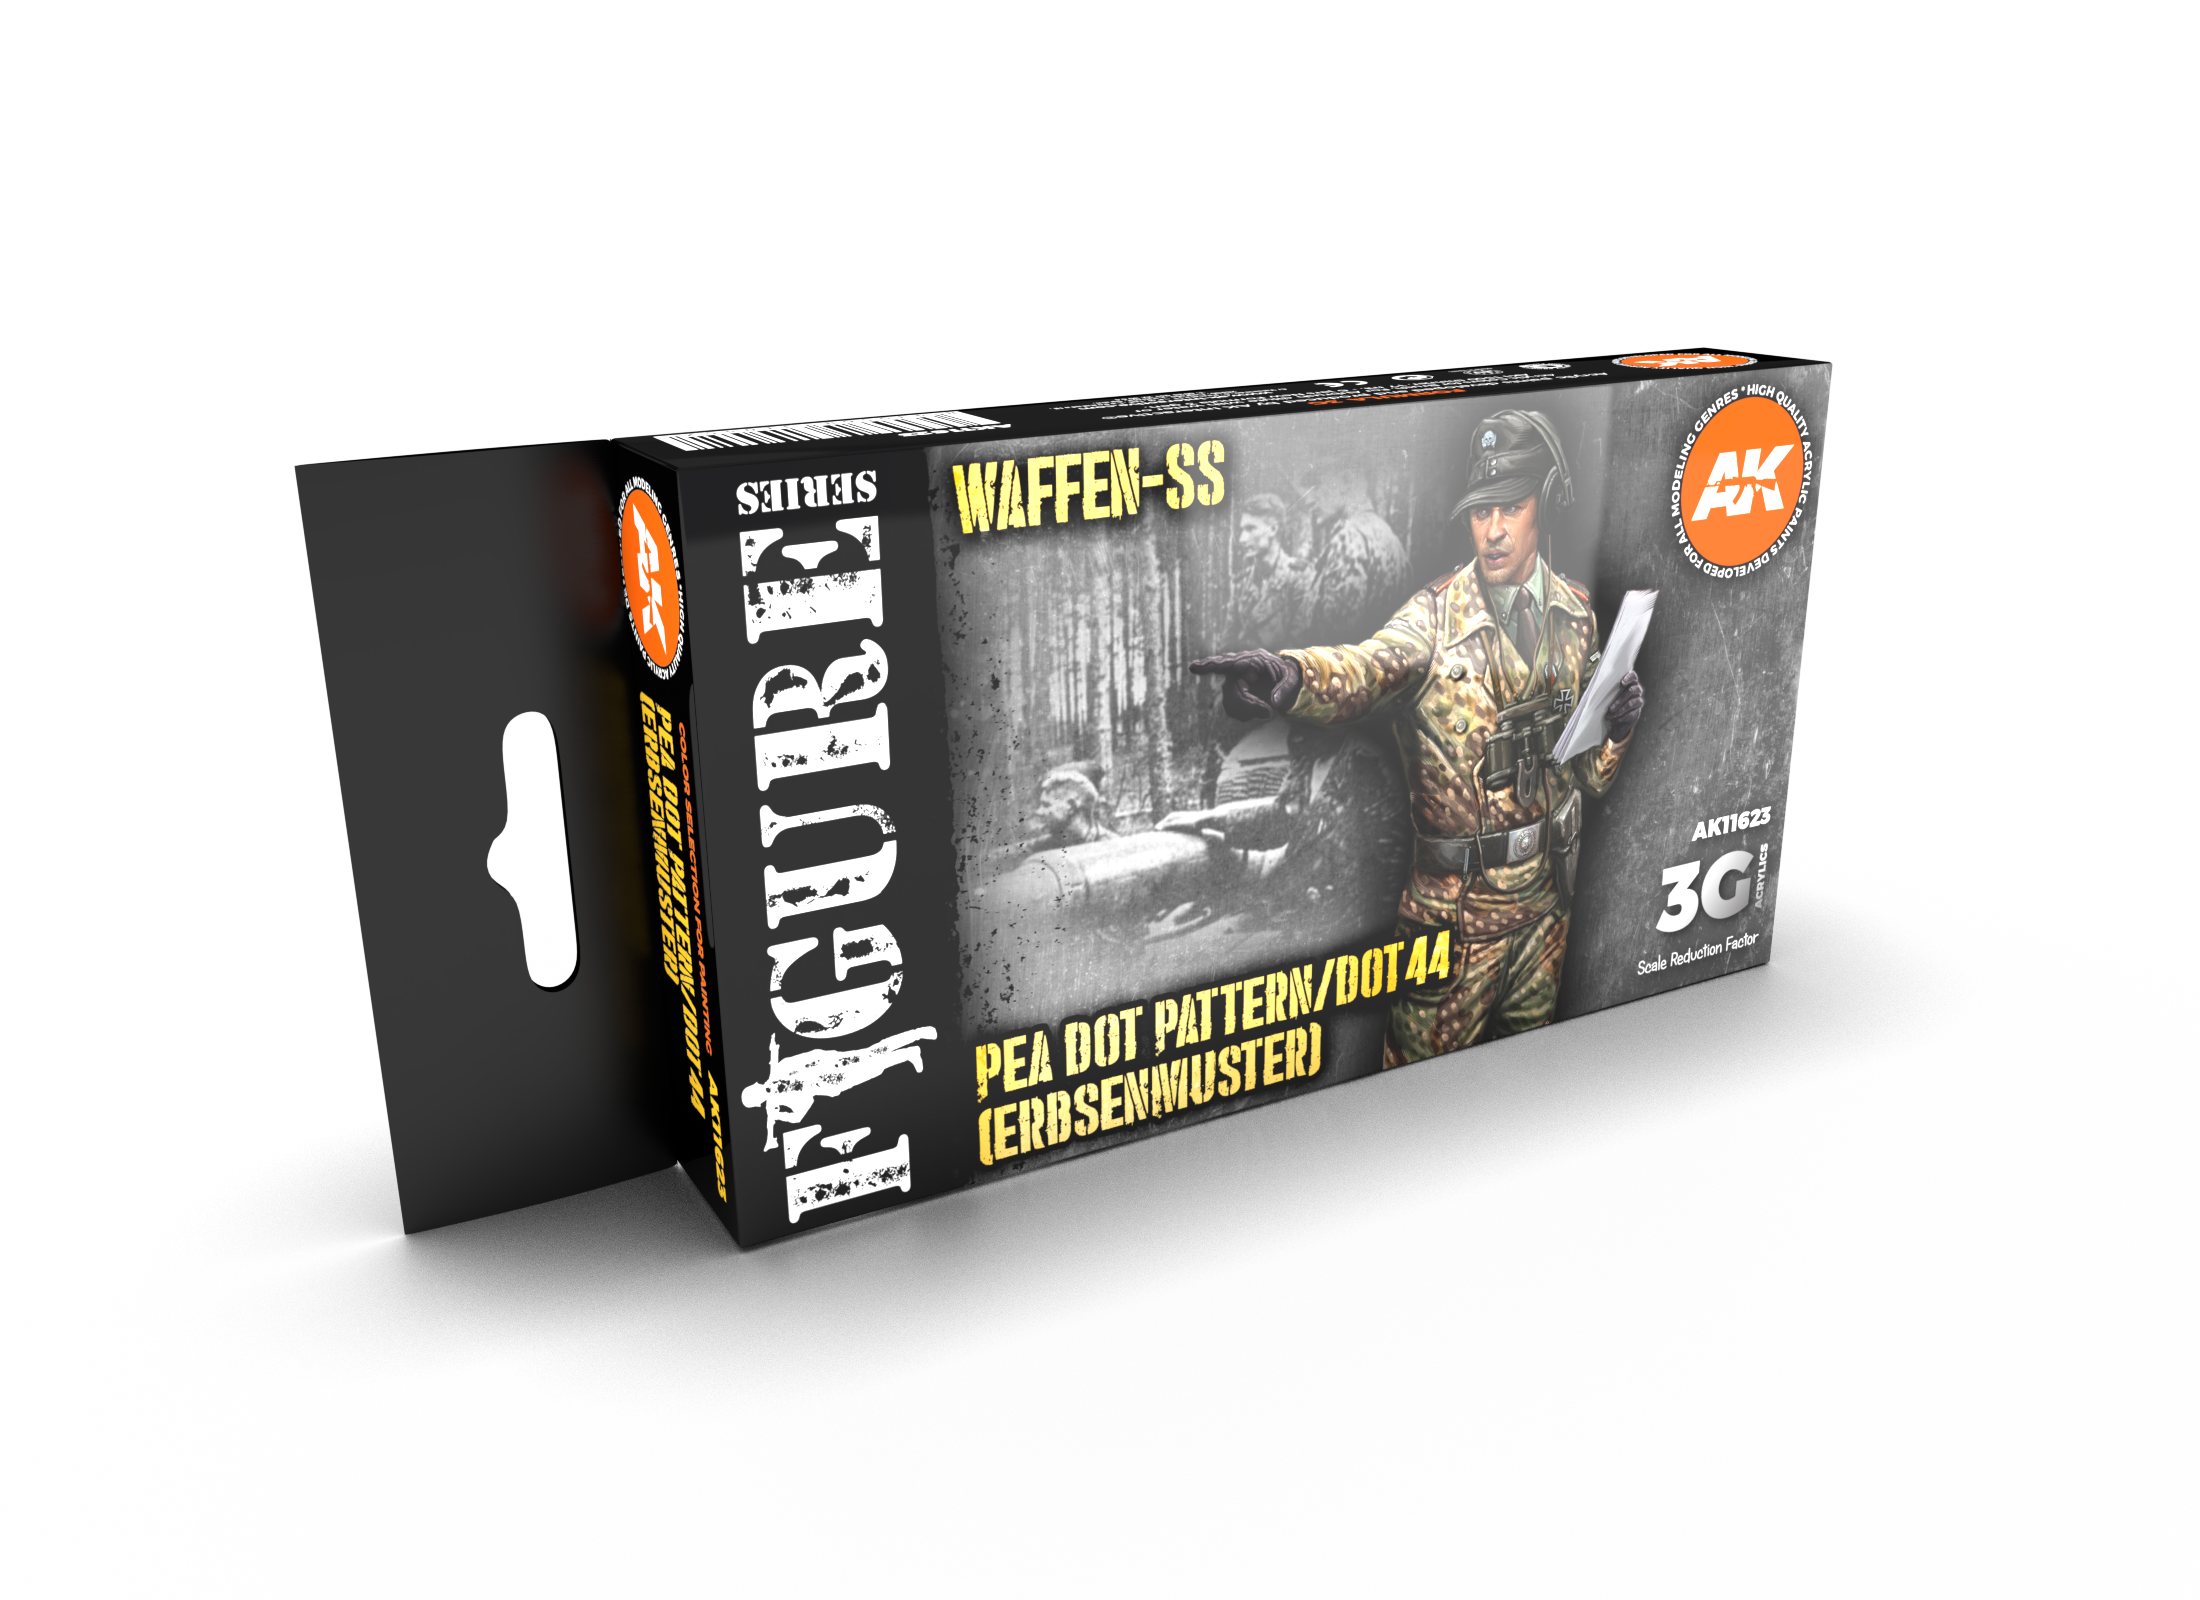 AK Interactive 3G Waffen SS 44 DOT Uniform Colors